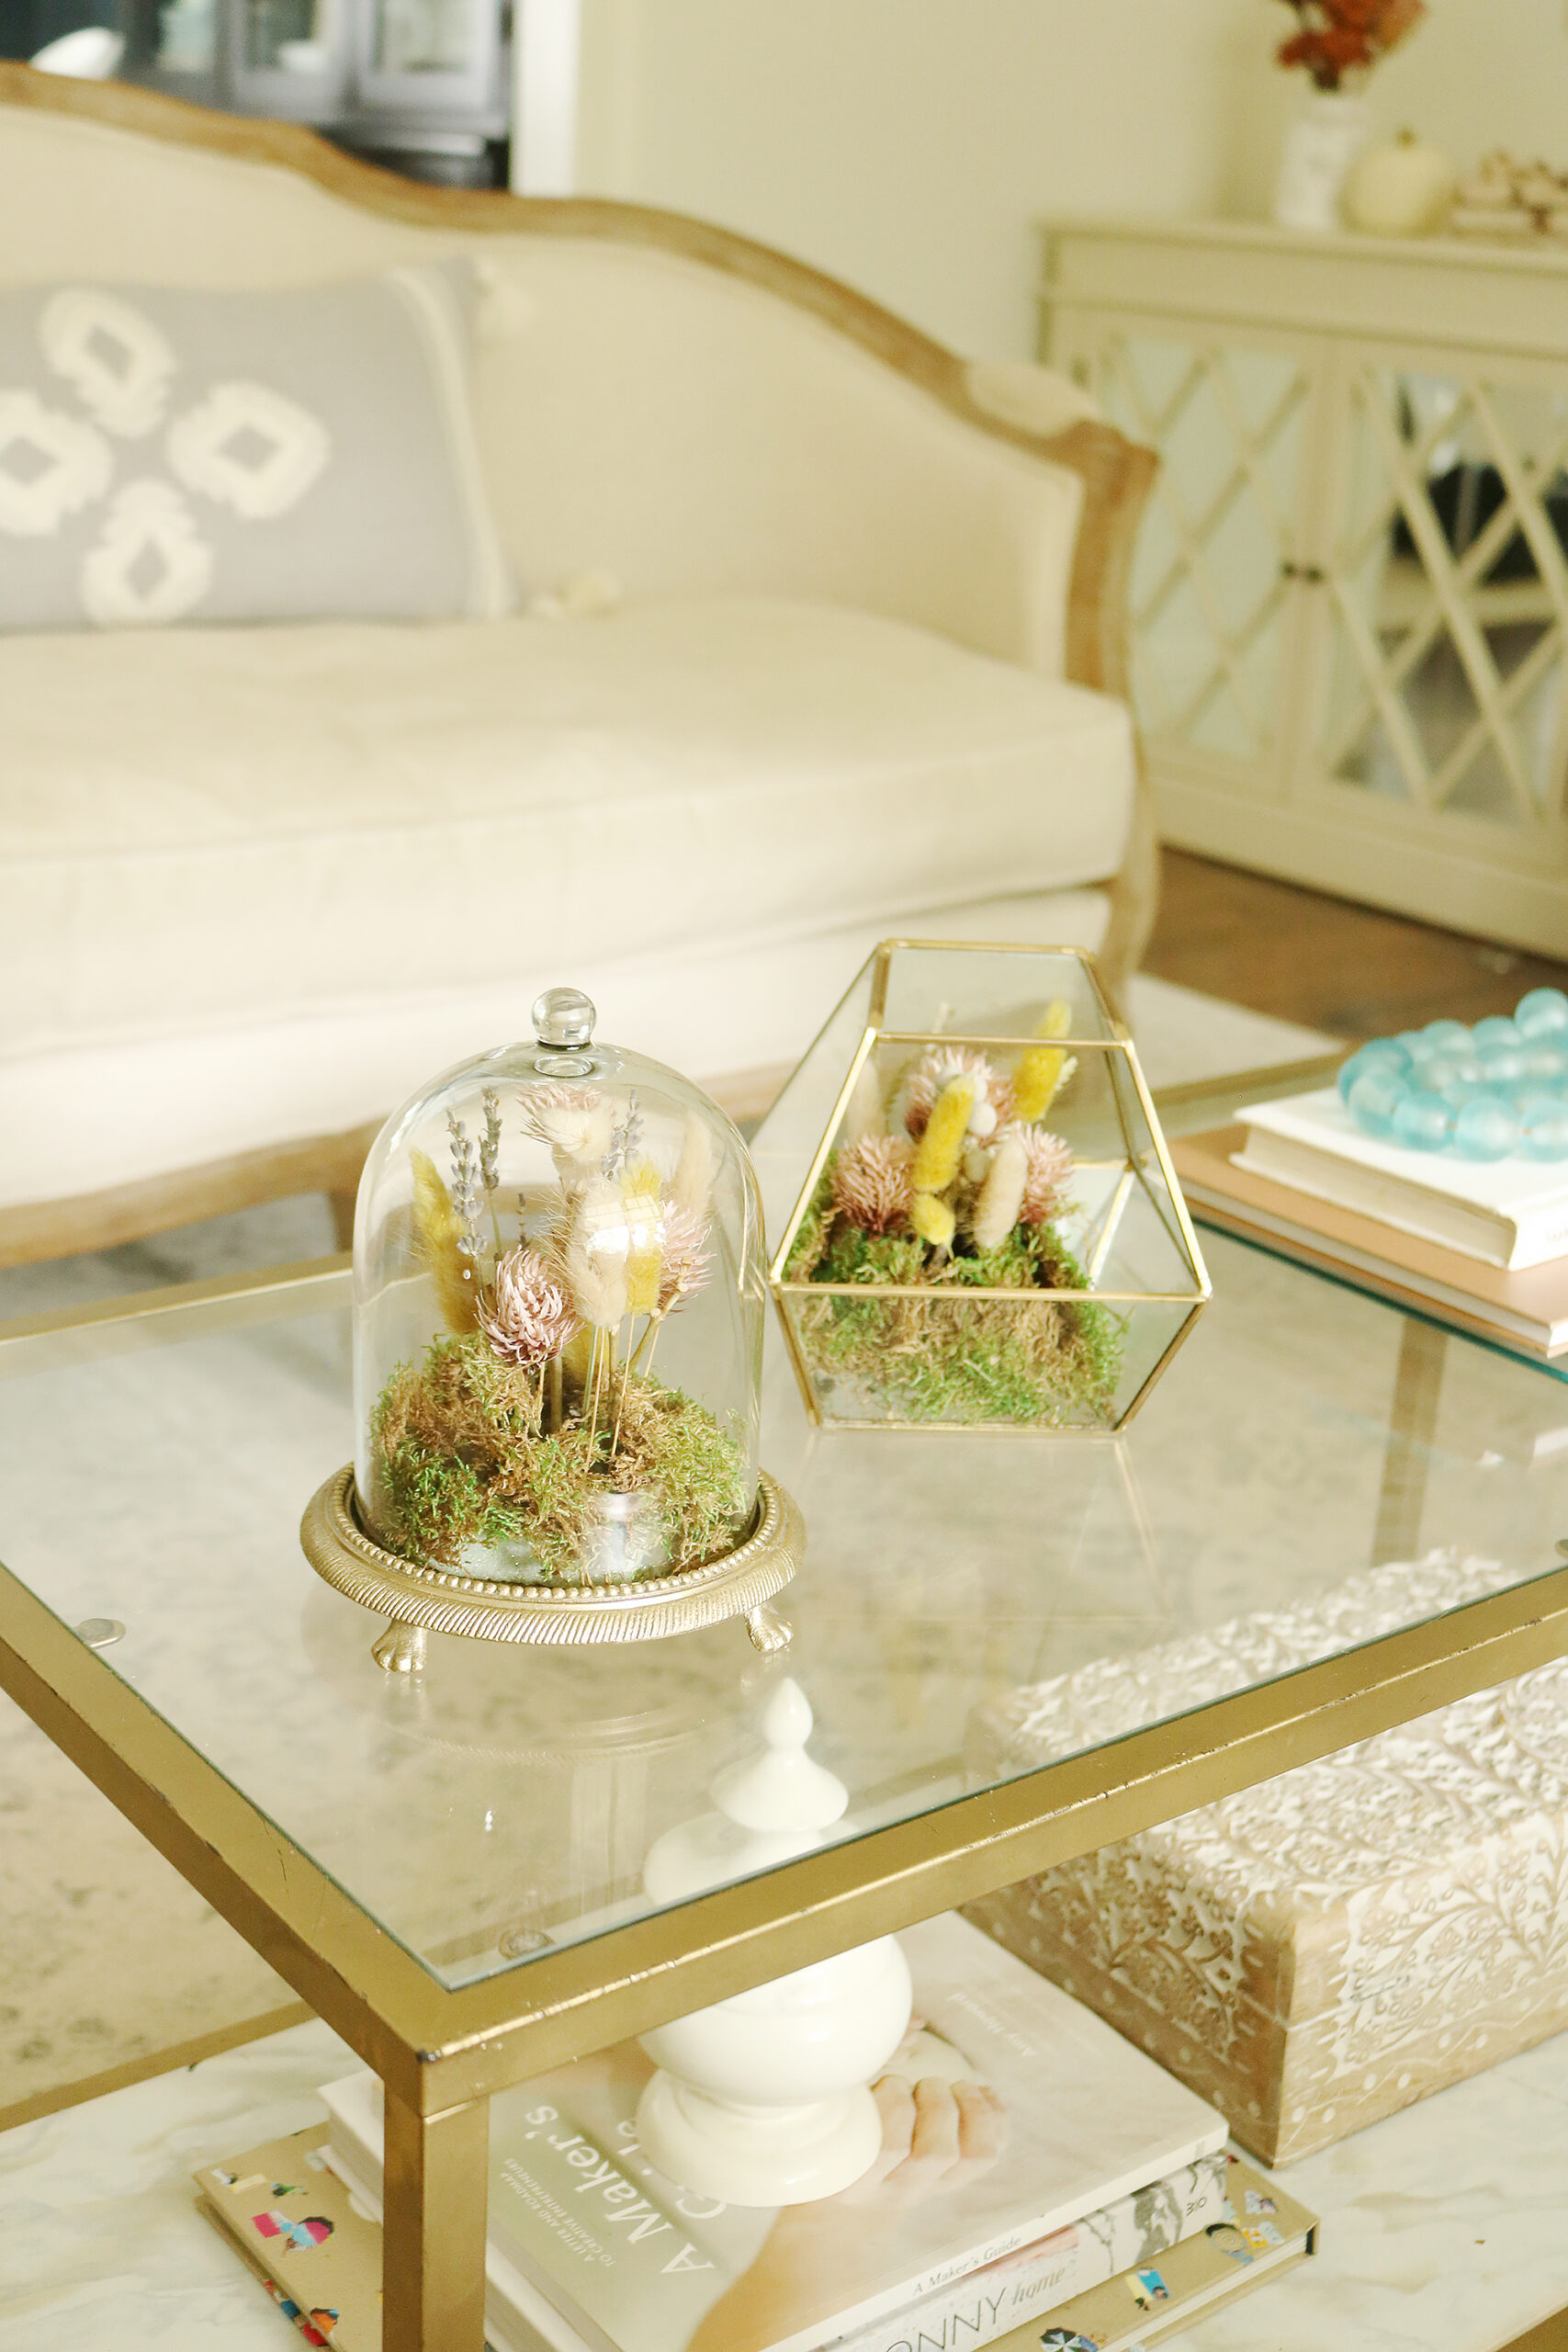 Easy Fall decorations with Dried flower terrariums || Darling Darleen Top CT Lifestyle Blogger #falldecor #falldecorations #ctlifestyleblogger #darlingdarleen